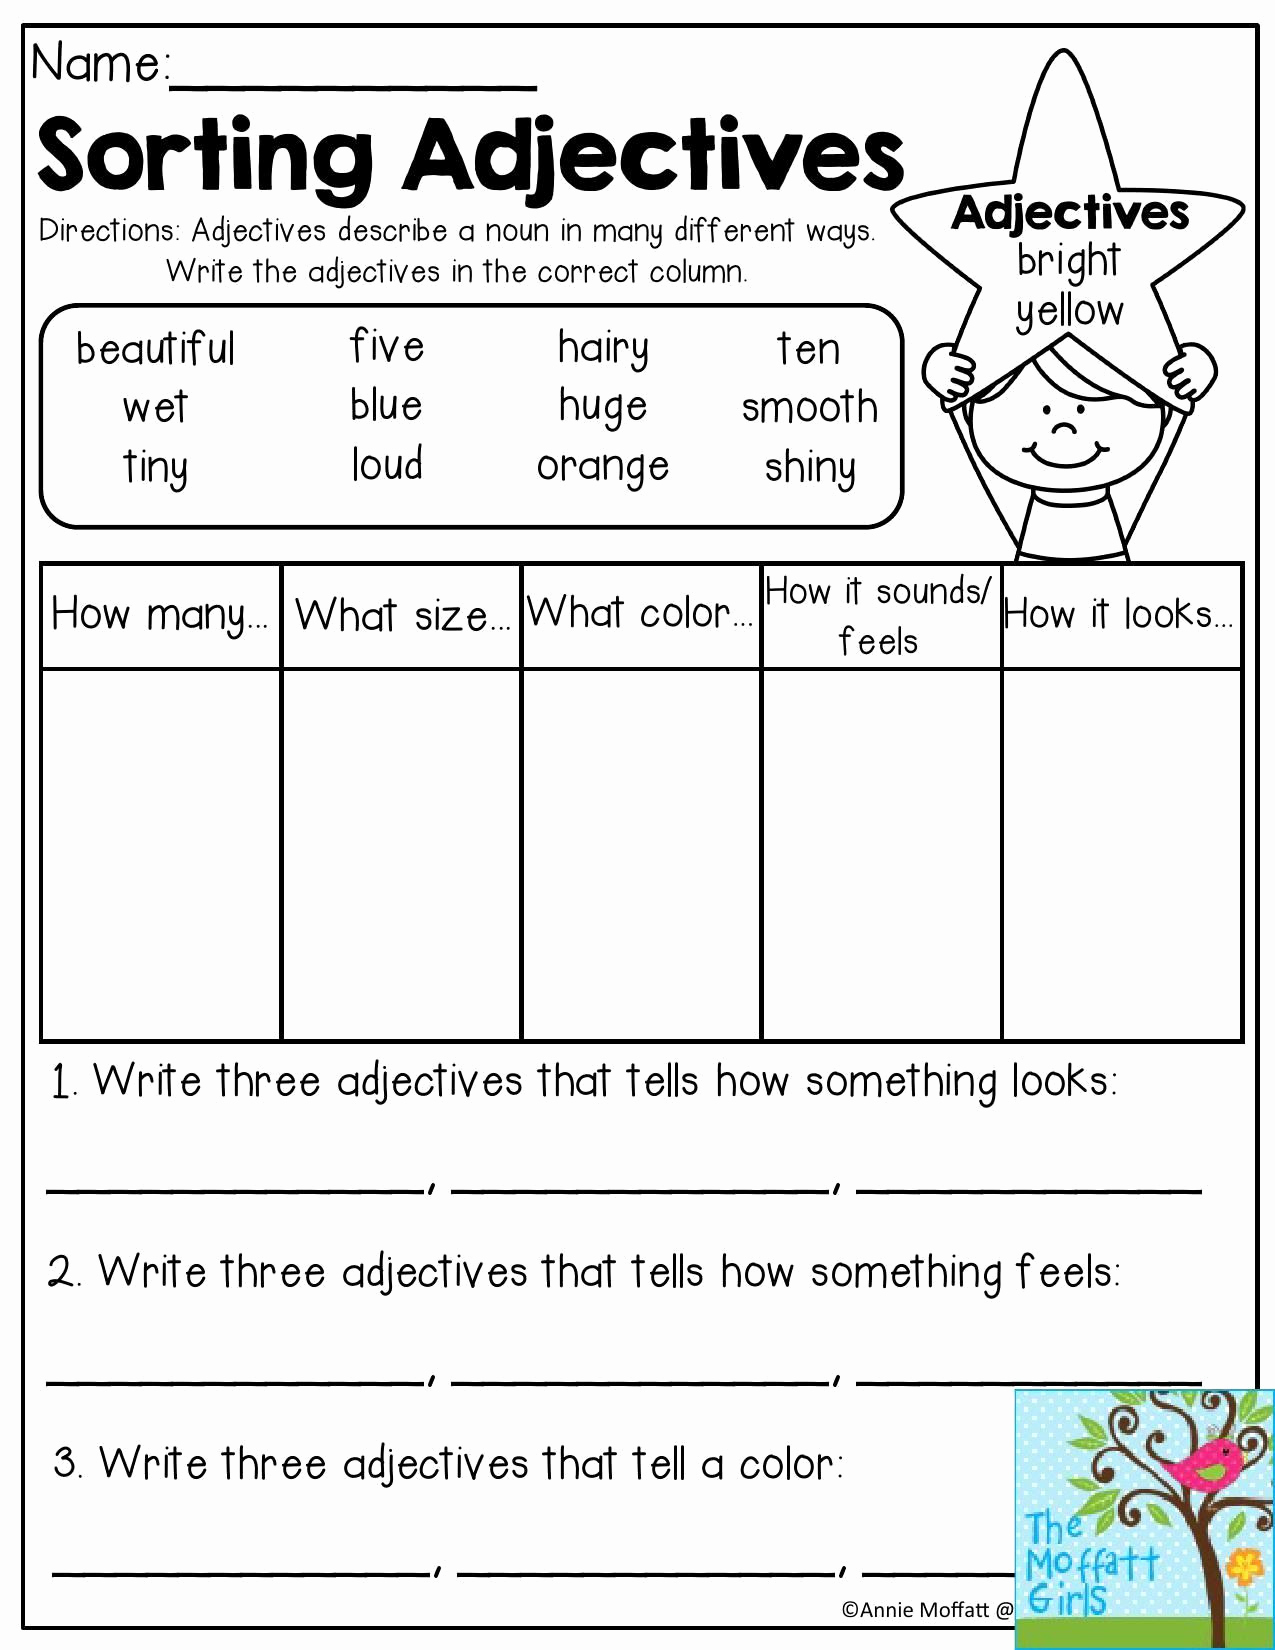 Free Printable Adjective Worksheets Beautiful 20 Adjective Worksheets 1st Grade